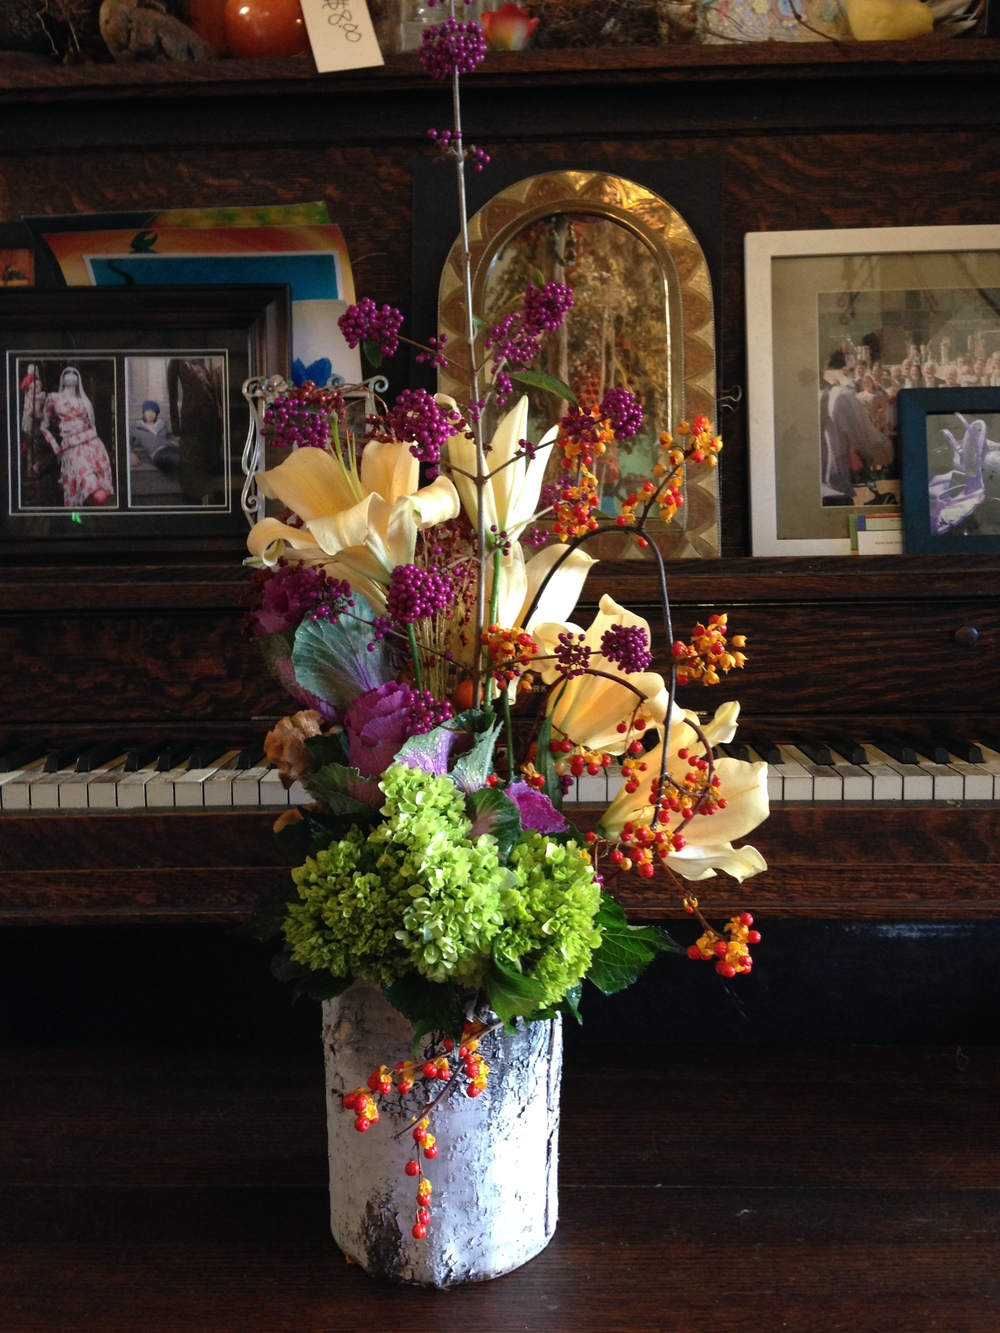 Birch bark-covered vase gives this arrangement a natural, woodsy appeal.